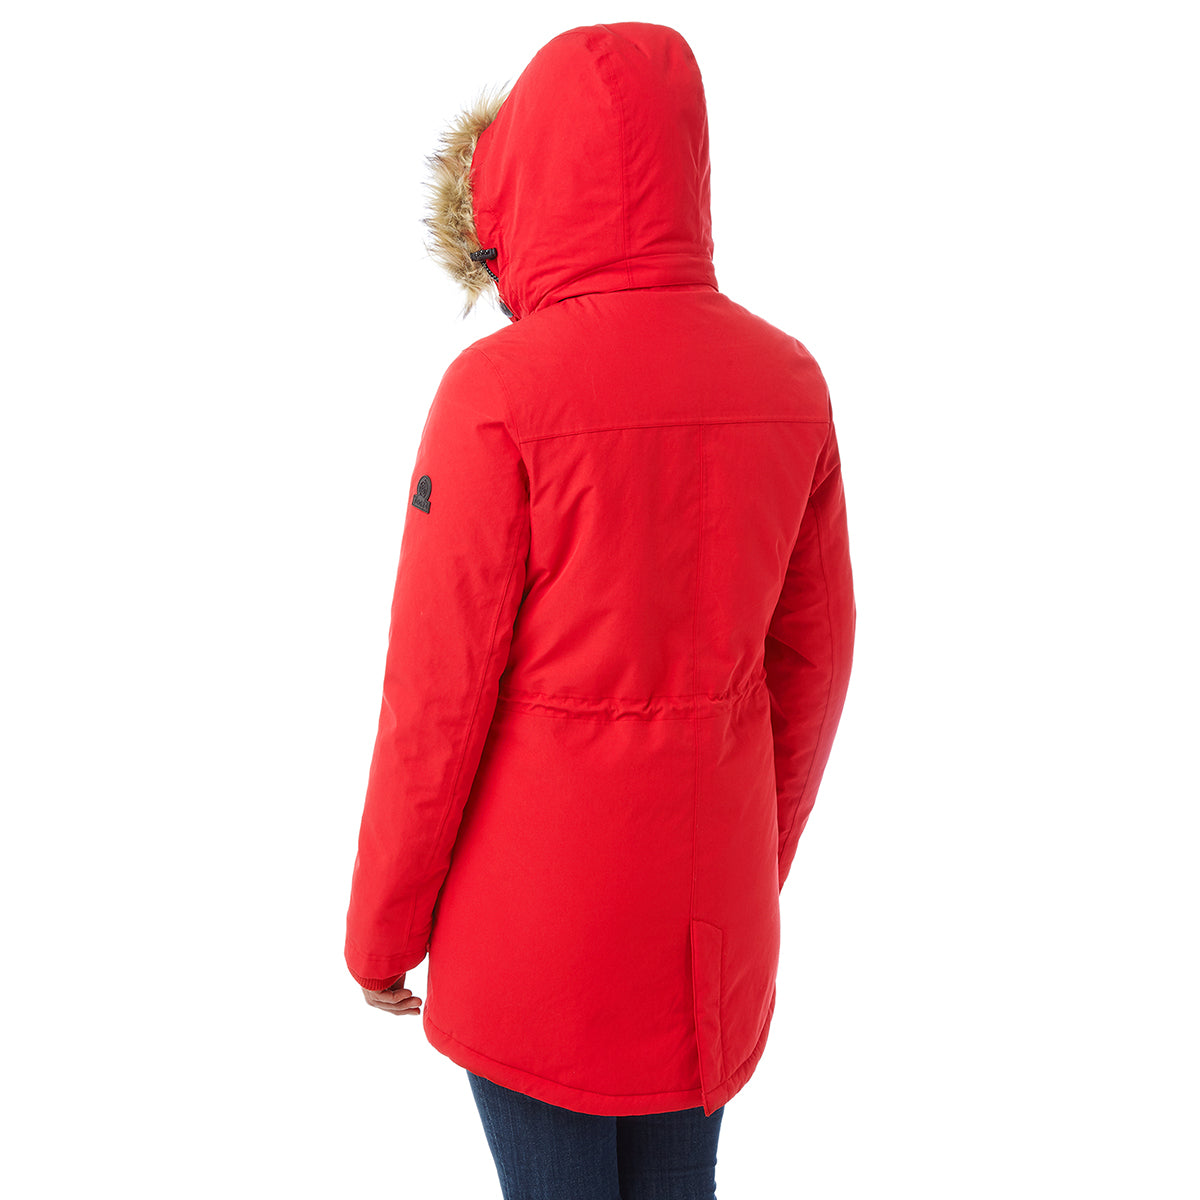 Essential Womens Waterproof Jacket - Rouge Red image 4